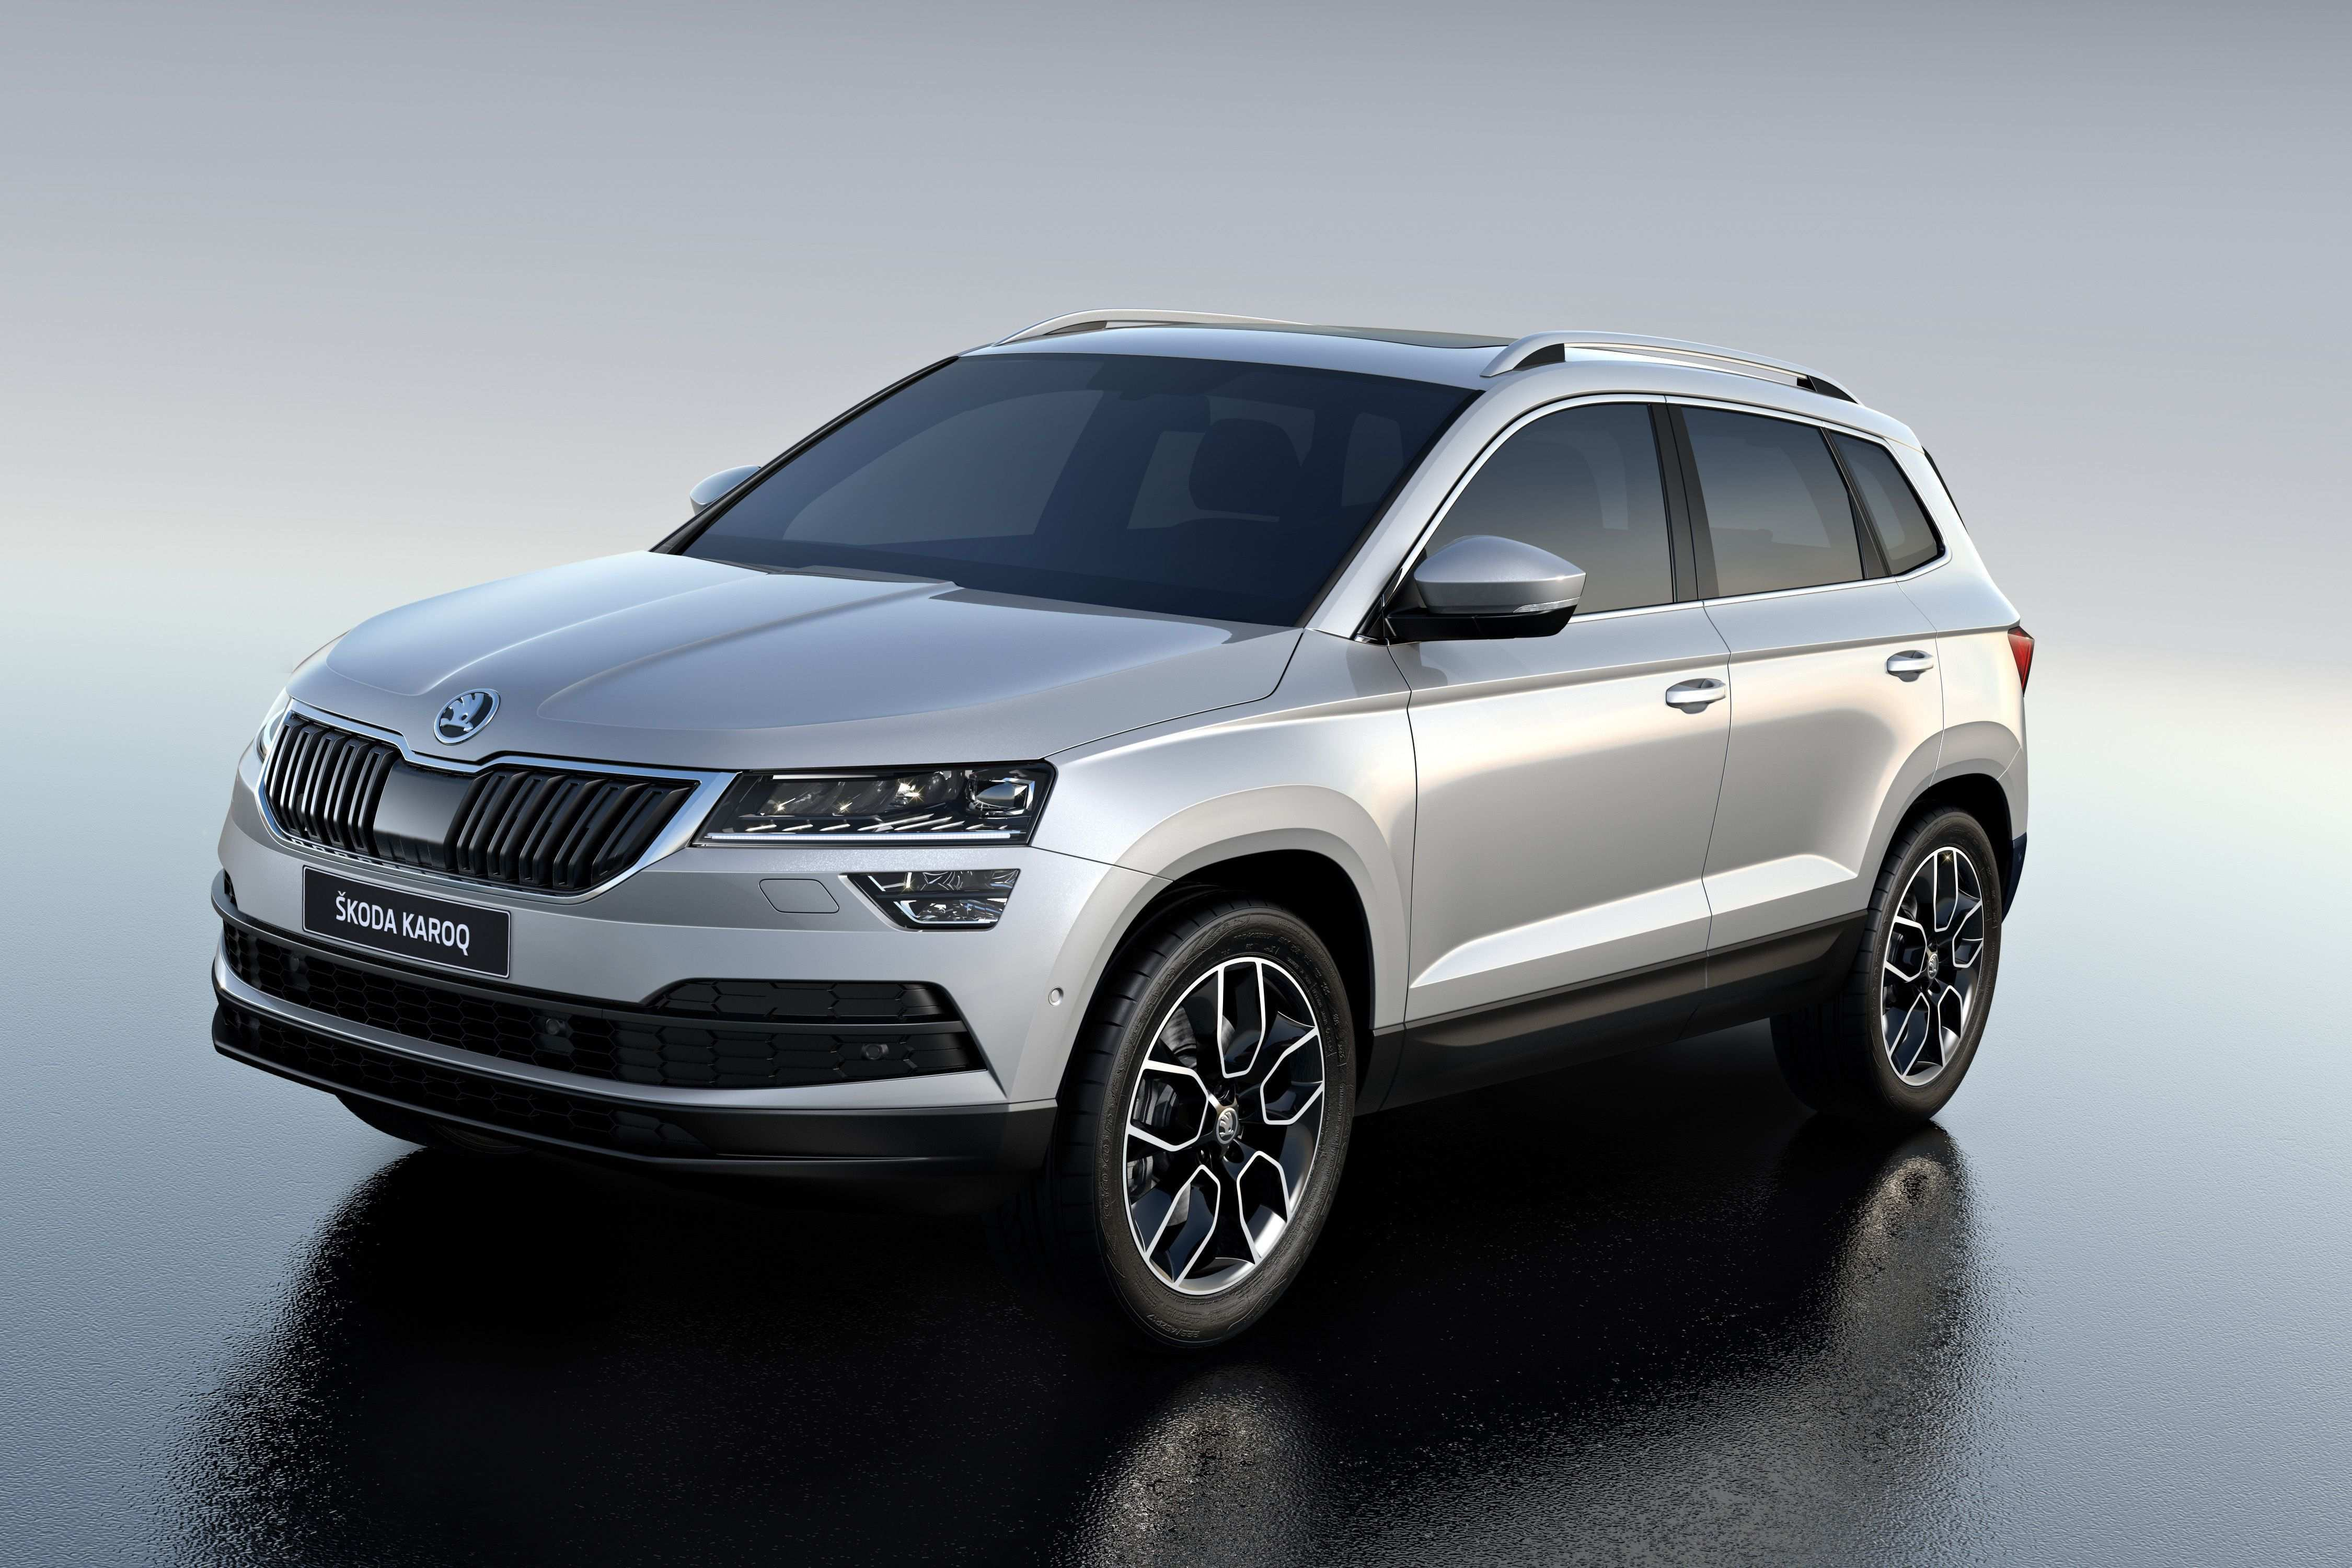 26 All New 2020 Skoda Snowman Full Preview Redesign by 2020 Skoda Snowman Full Preview